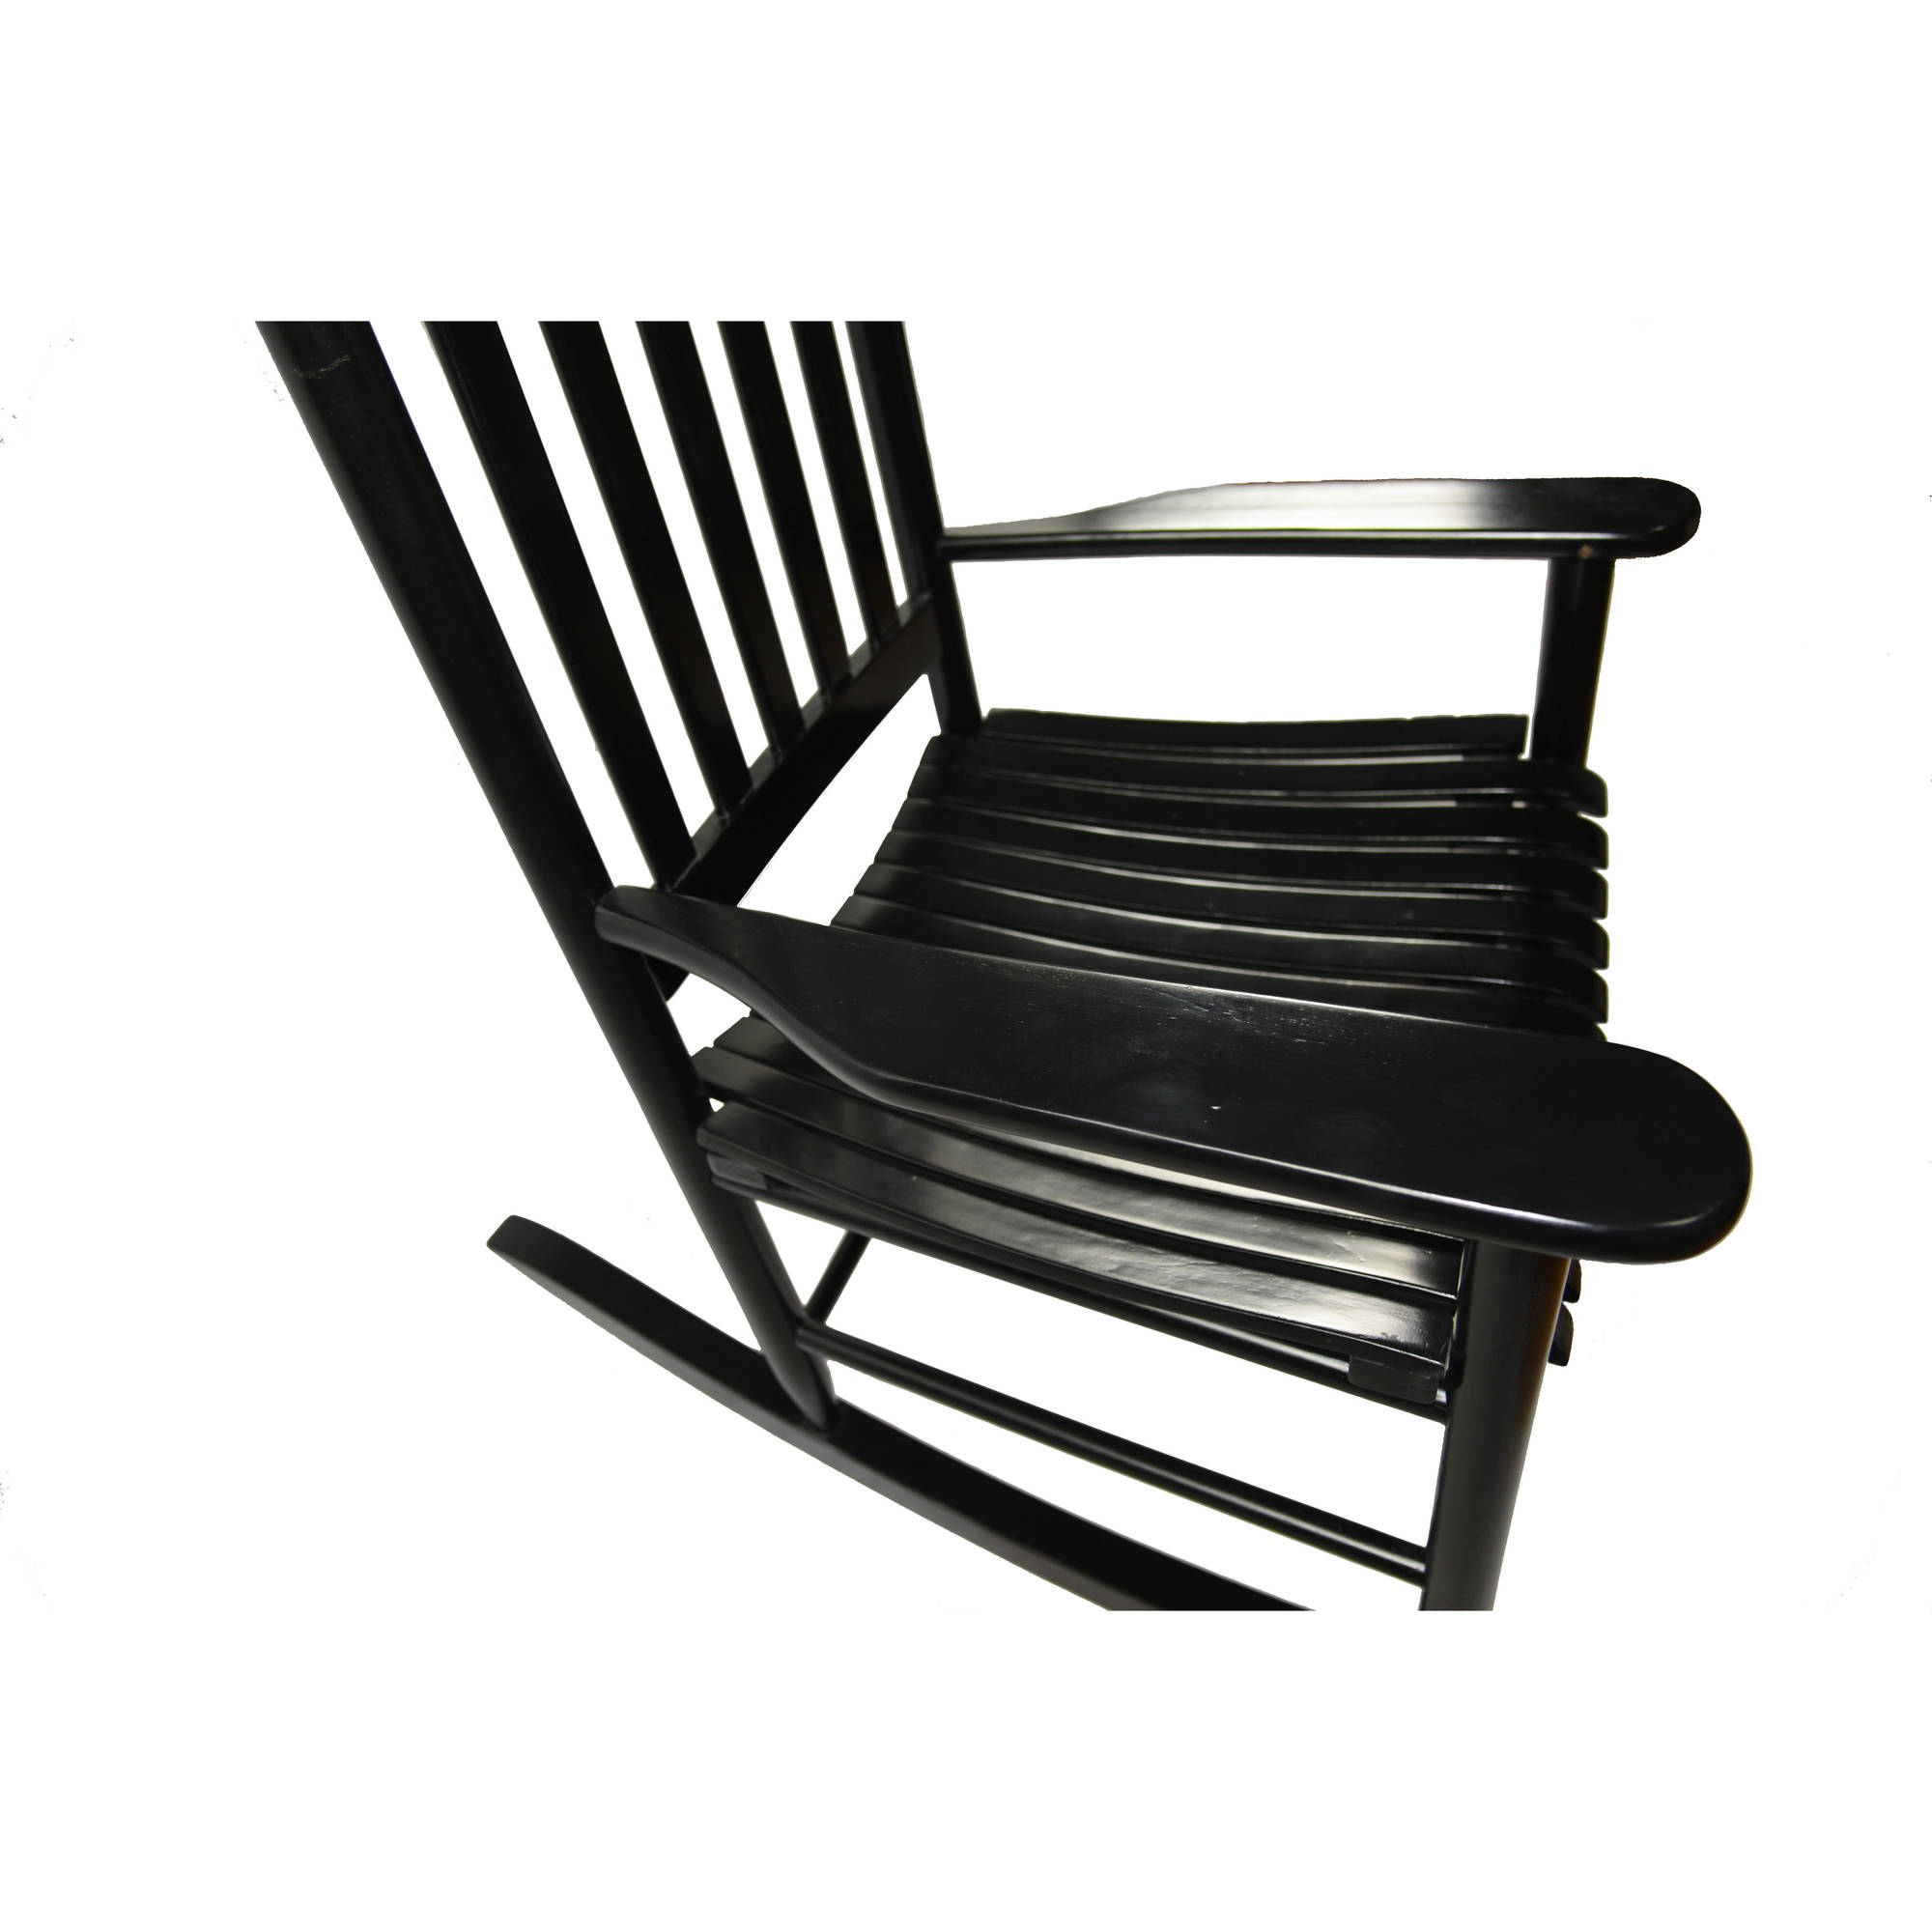 Enjoyable Mainstays Outdoor Wood Rocking Chair Creativecarmelina Interior Chair Design Creativecarmelinacom